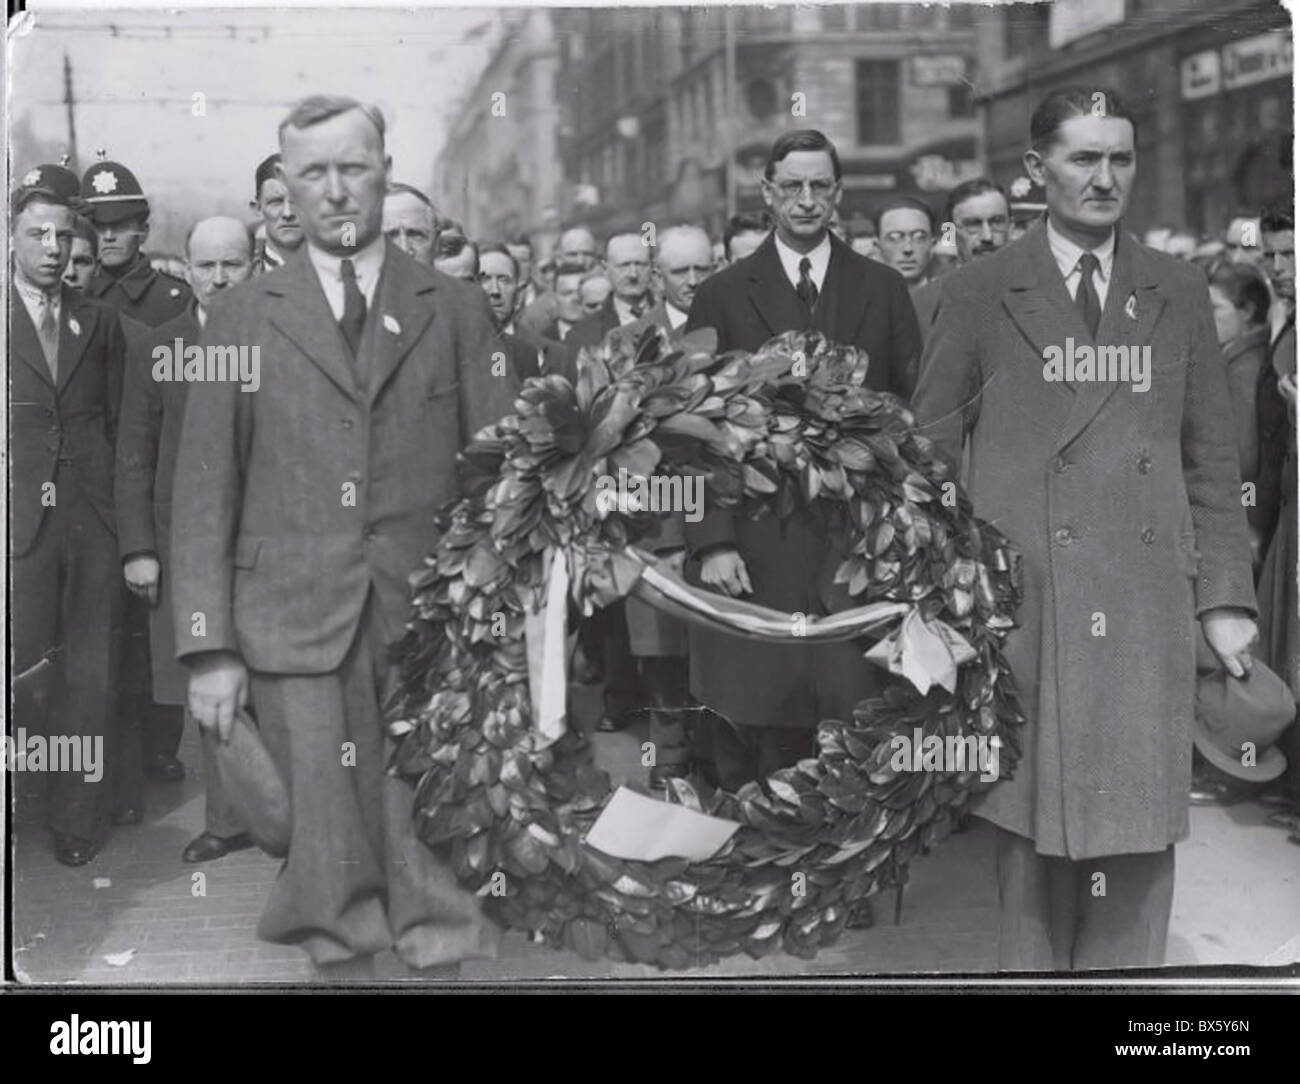 Dublin, Ireland, Men carrying the wreath at the funeral of a comrade who fell during the Easter 1916 Irish Uprising - Stock Image